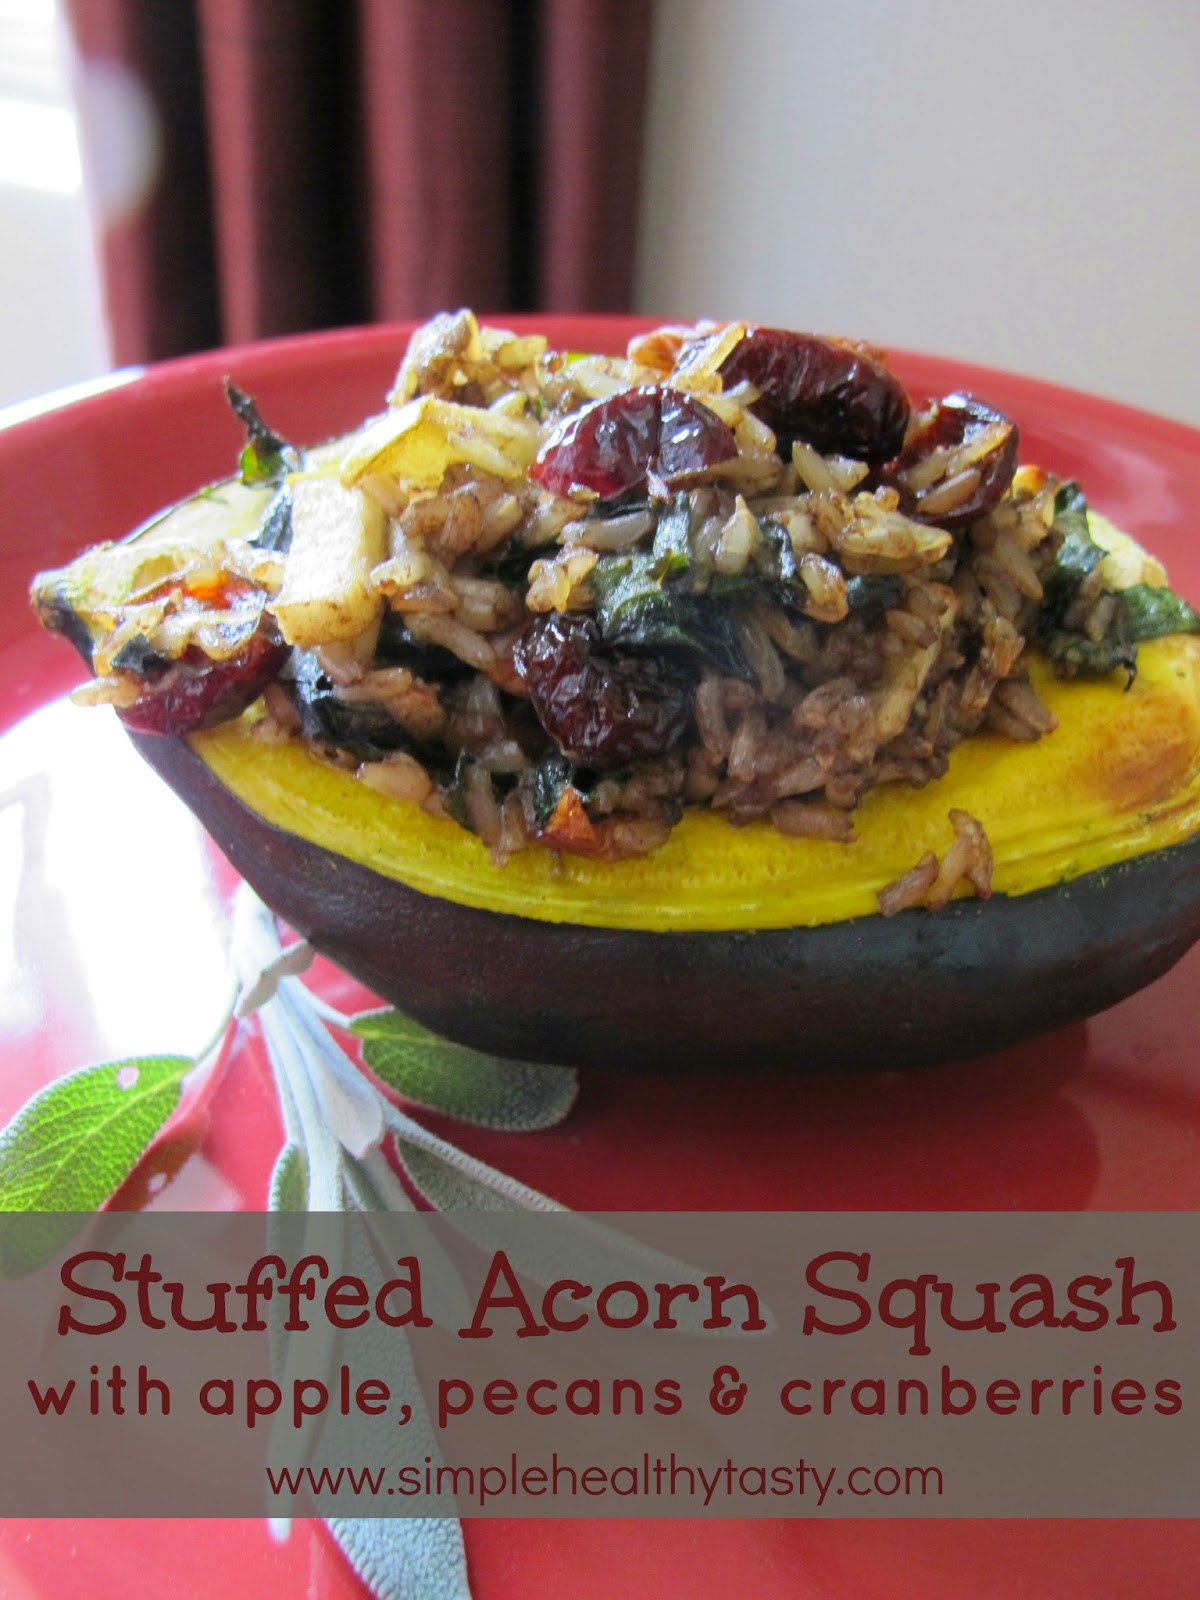 Acorn squash baked with pecans - Cook and Post